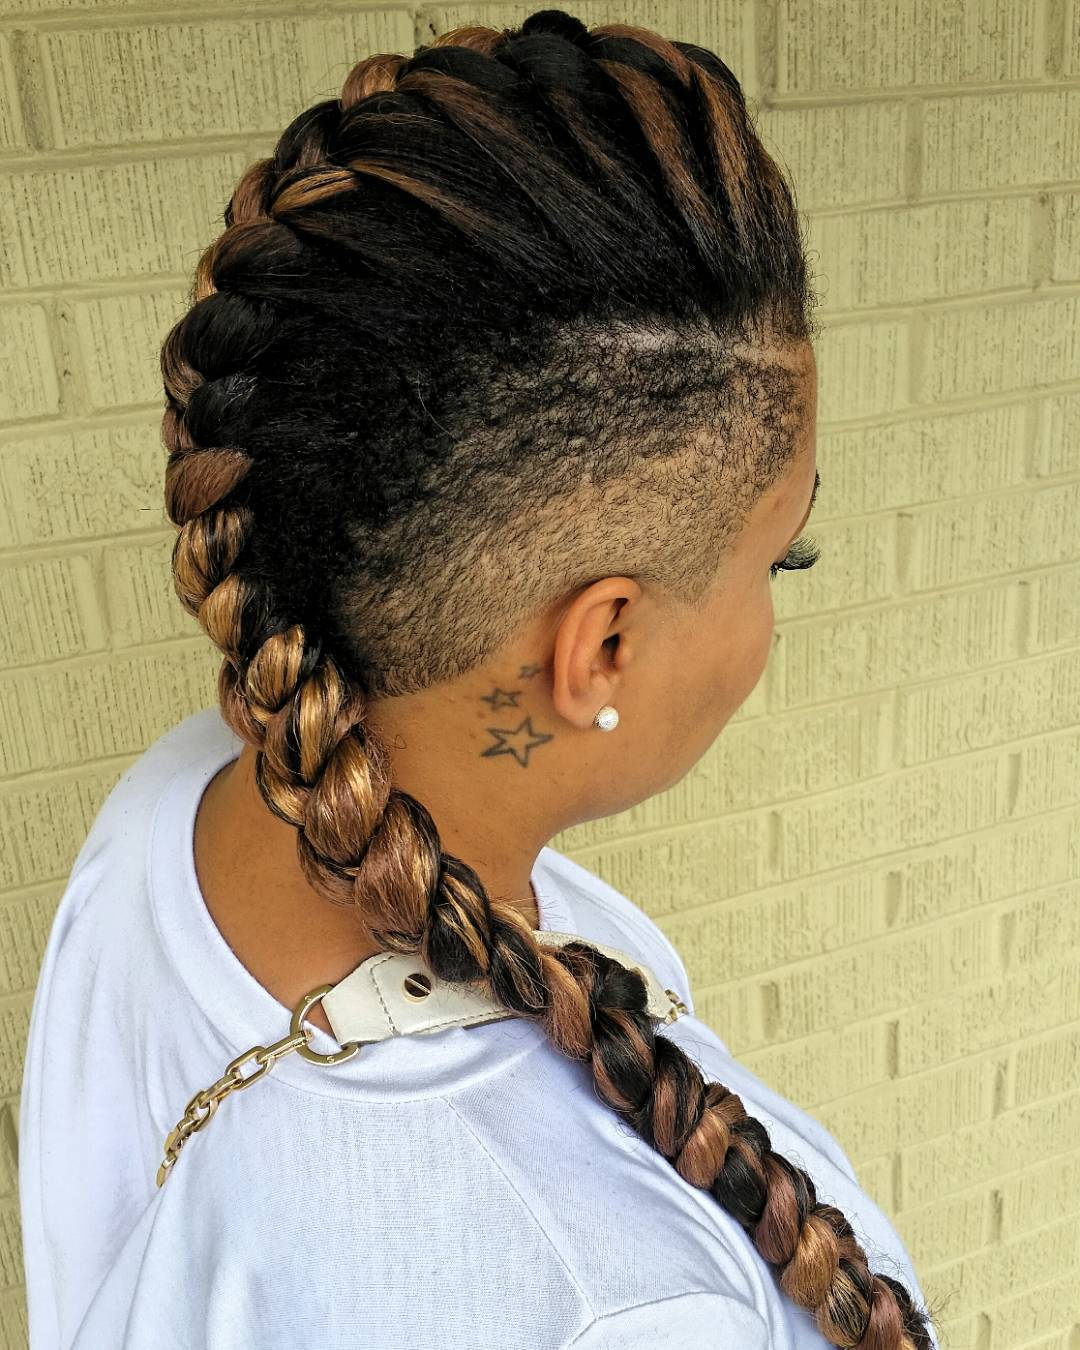 Miraculous Amazing African Goddess Braids Hairstyles Hairdrome Com Hairstyles For Women Draintrainus